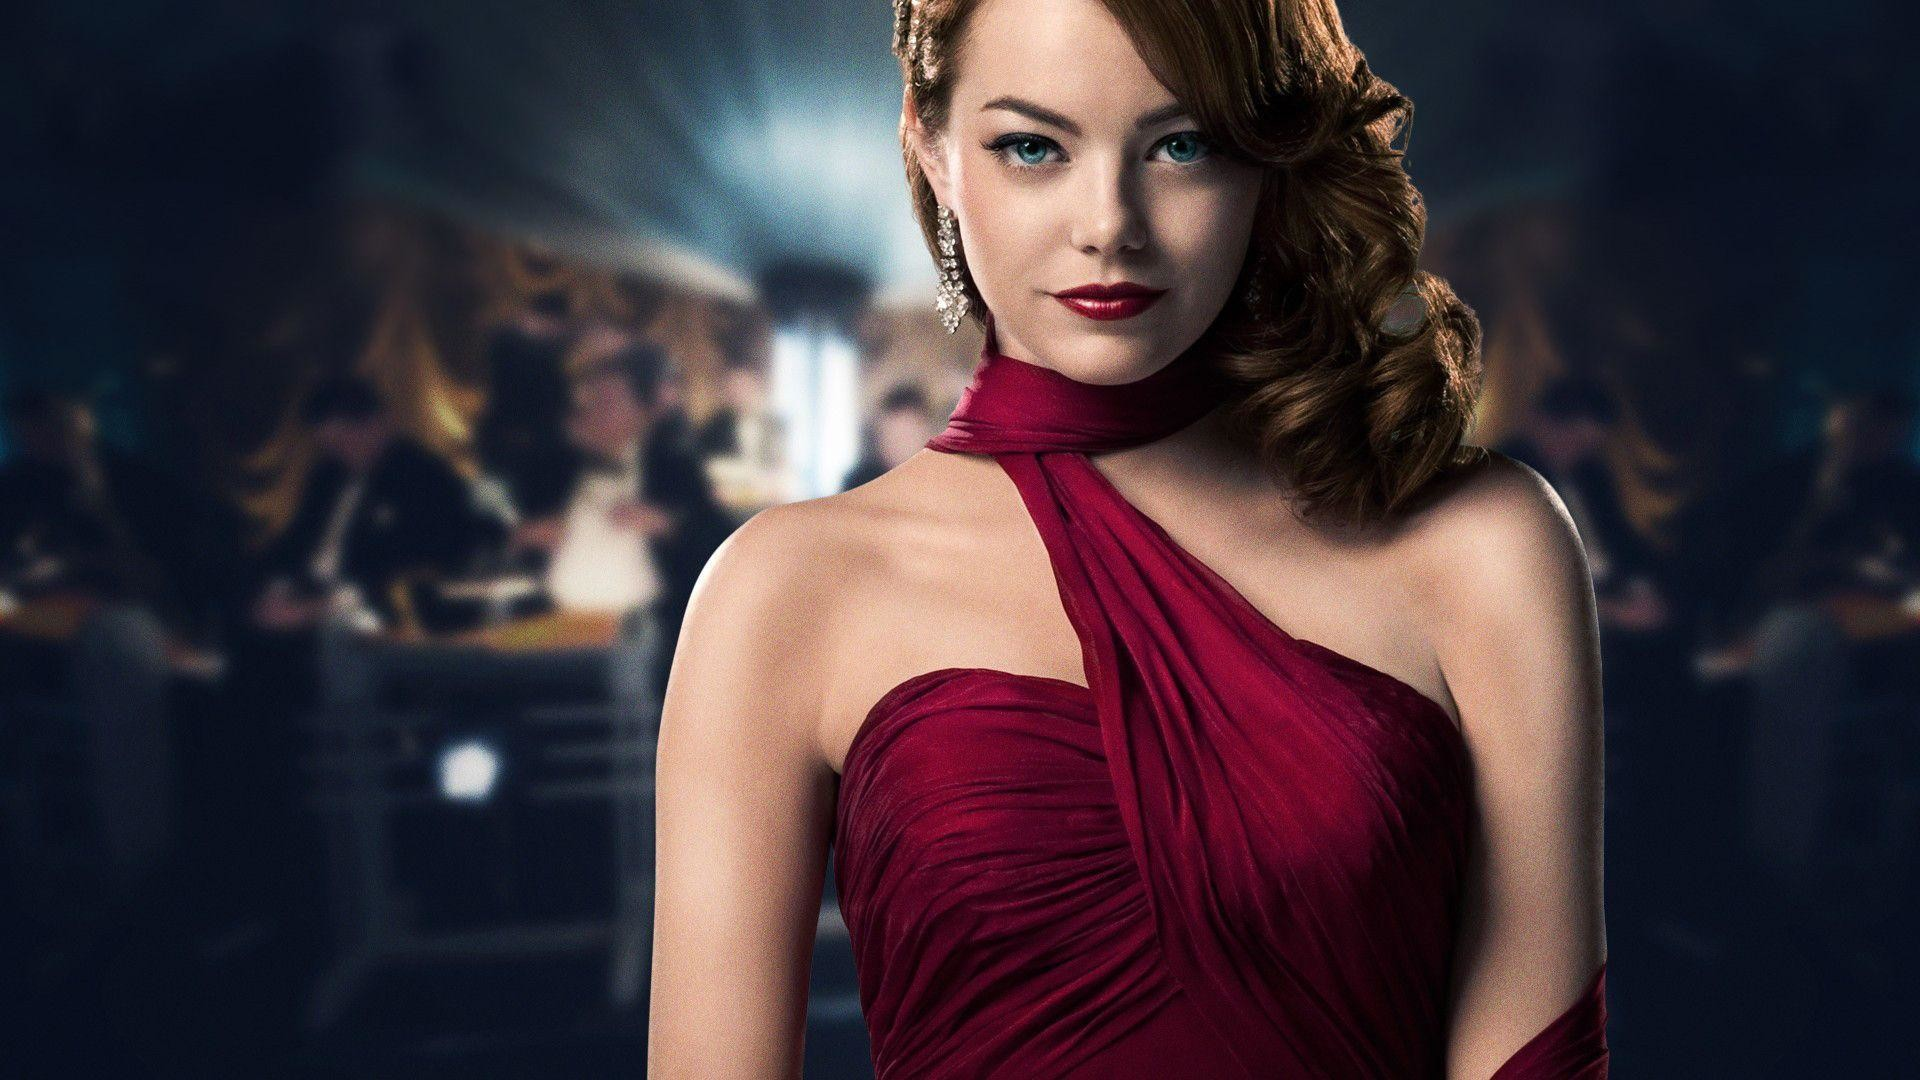 Emma Stone Red Dress Wallpaper